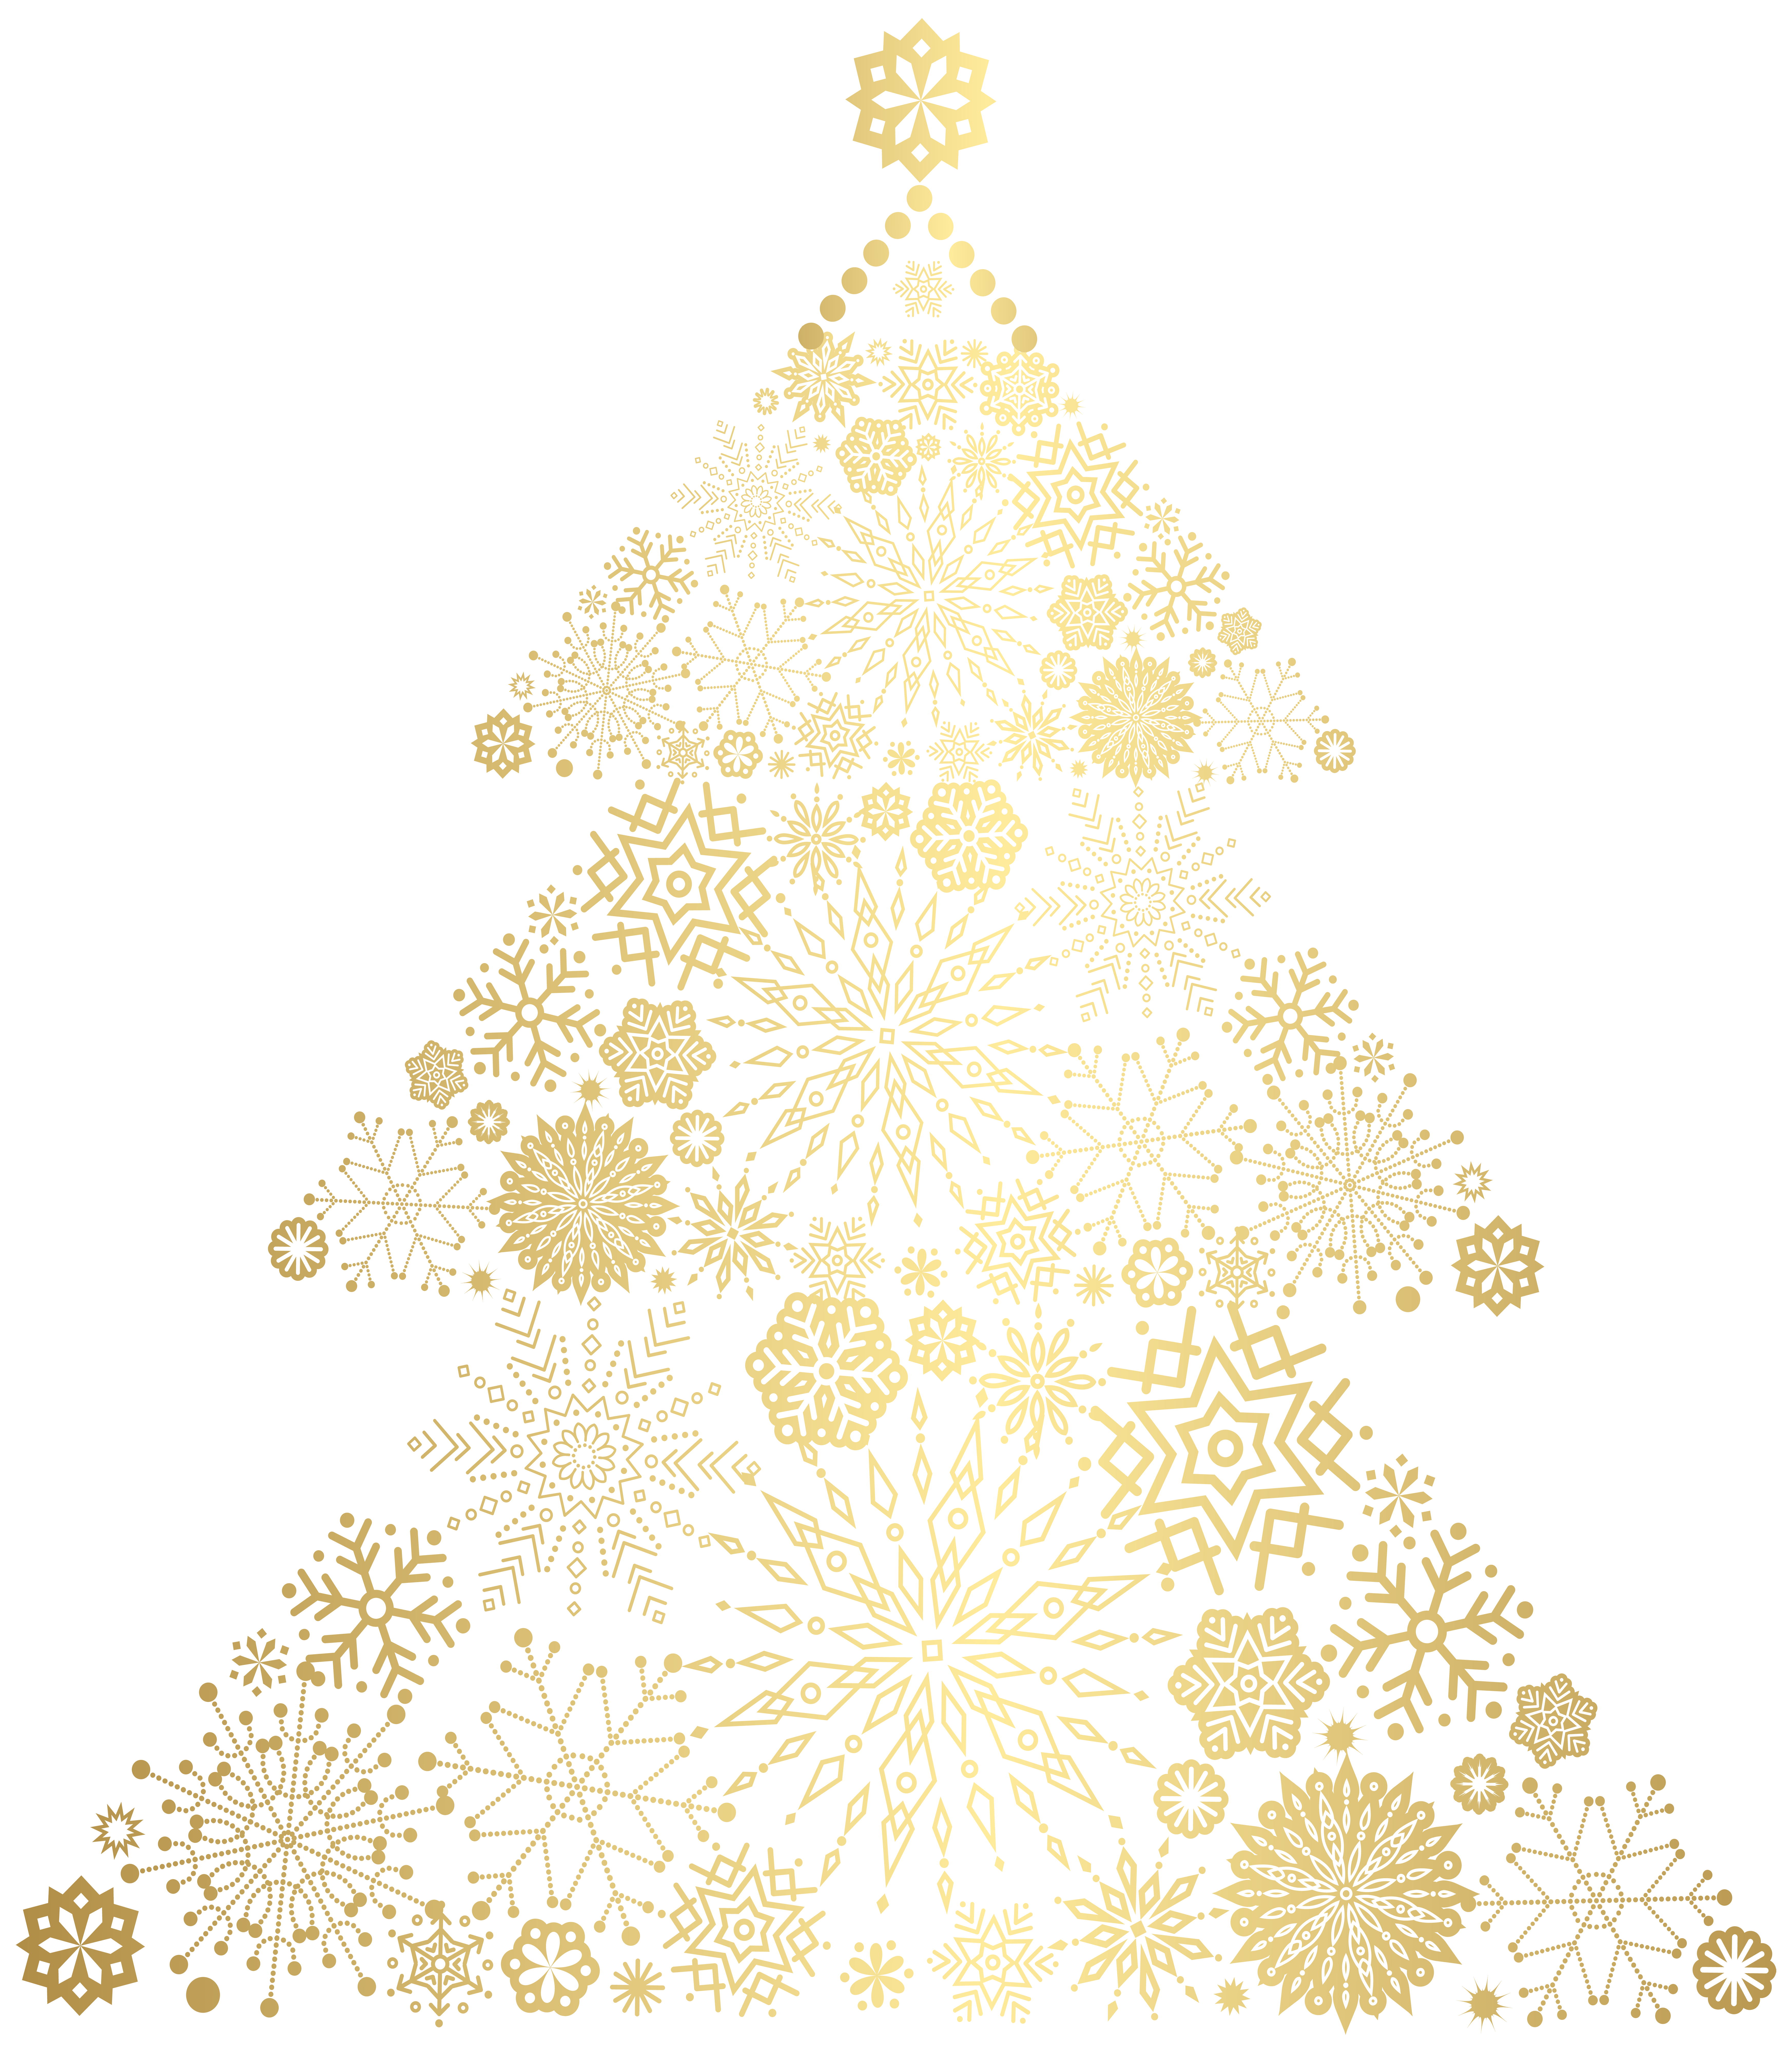 Gold christmas tree clipart banner royalty free download Christmas tree Pattern - Christmas Gold Tree PNG Clip Art Image 6984 ... banner royalty free download